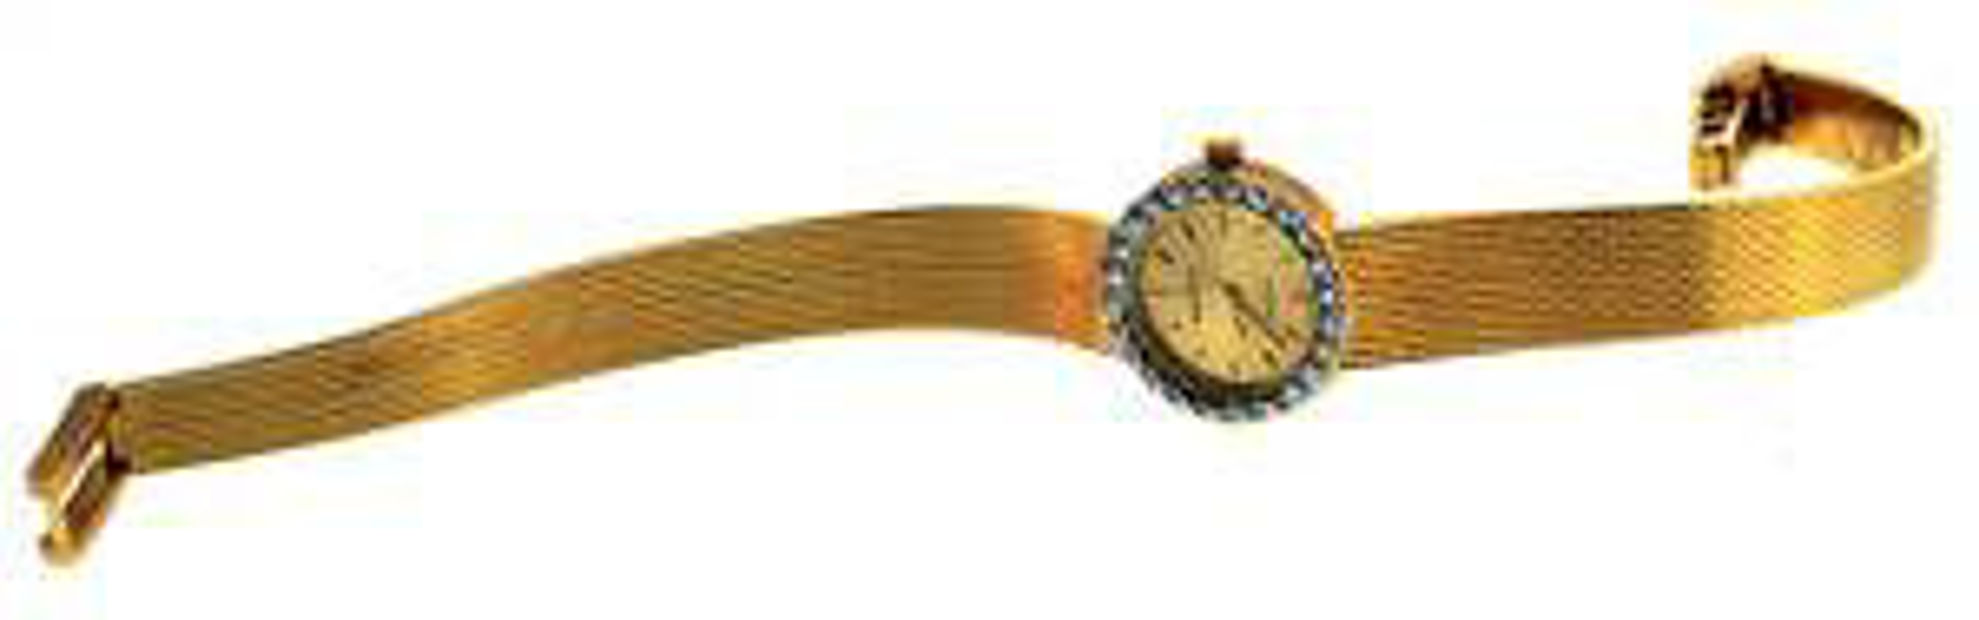 Picture of Gold Watches 14kt-15.0 DWT, 23.3 Grams